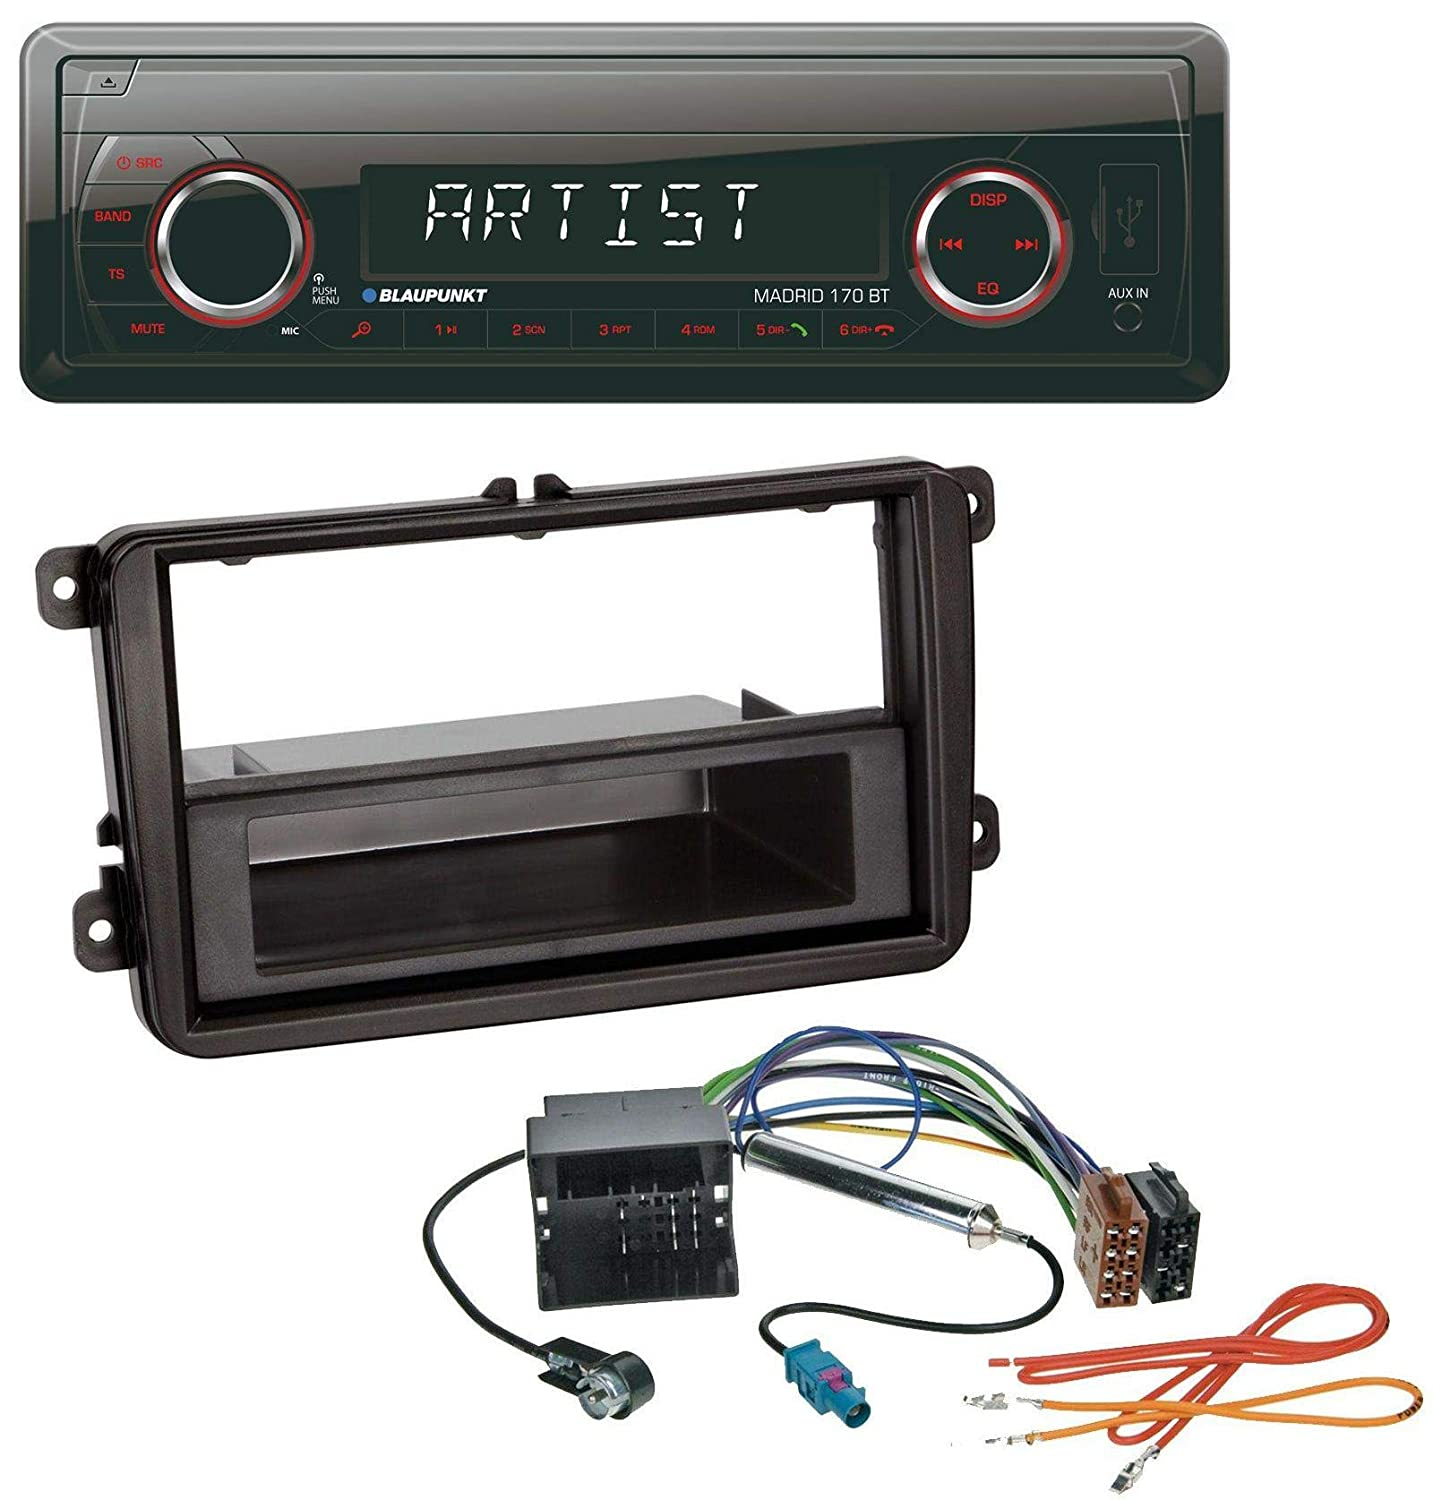 caraudio24 Blaupunkt Madrid 170 BT MP3 USB AUX Bluetooth SD Autoradio f/ür VW Passat 05-10 Polo 09-14 Scirocco ab 08